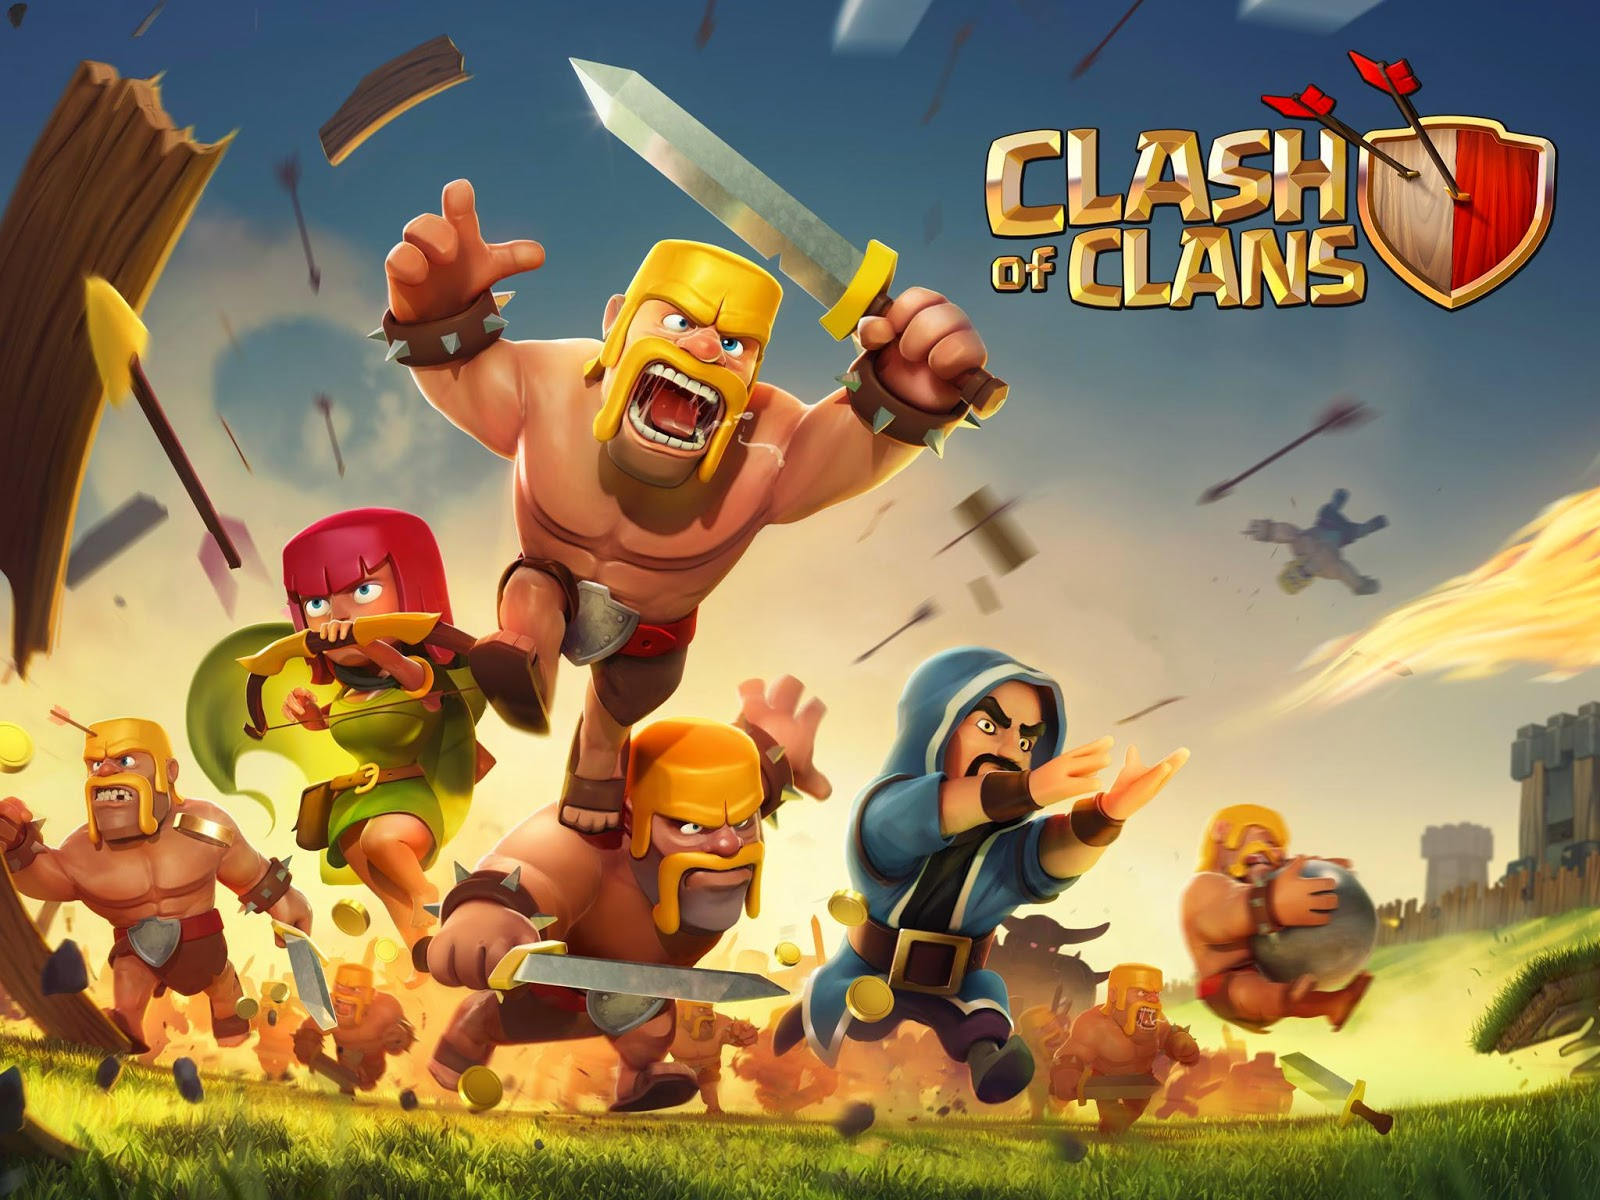 Wallpaper Of Clash Of Clans: Free Download High Definition